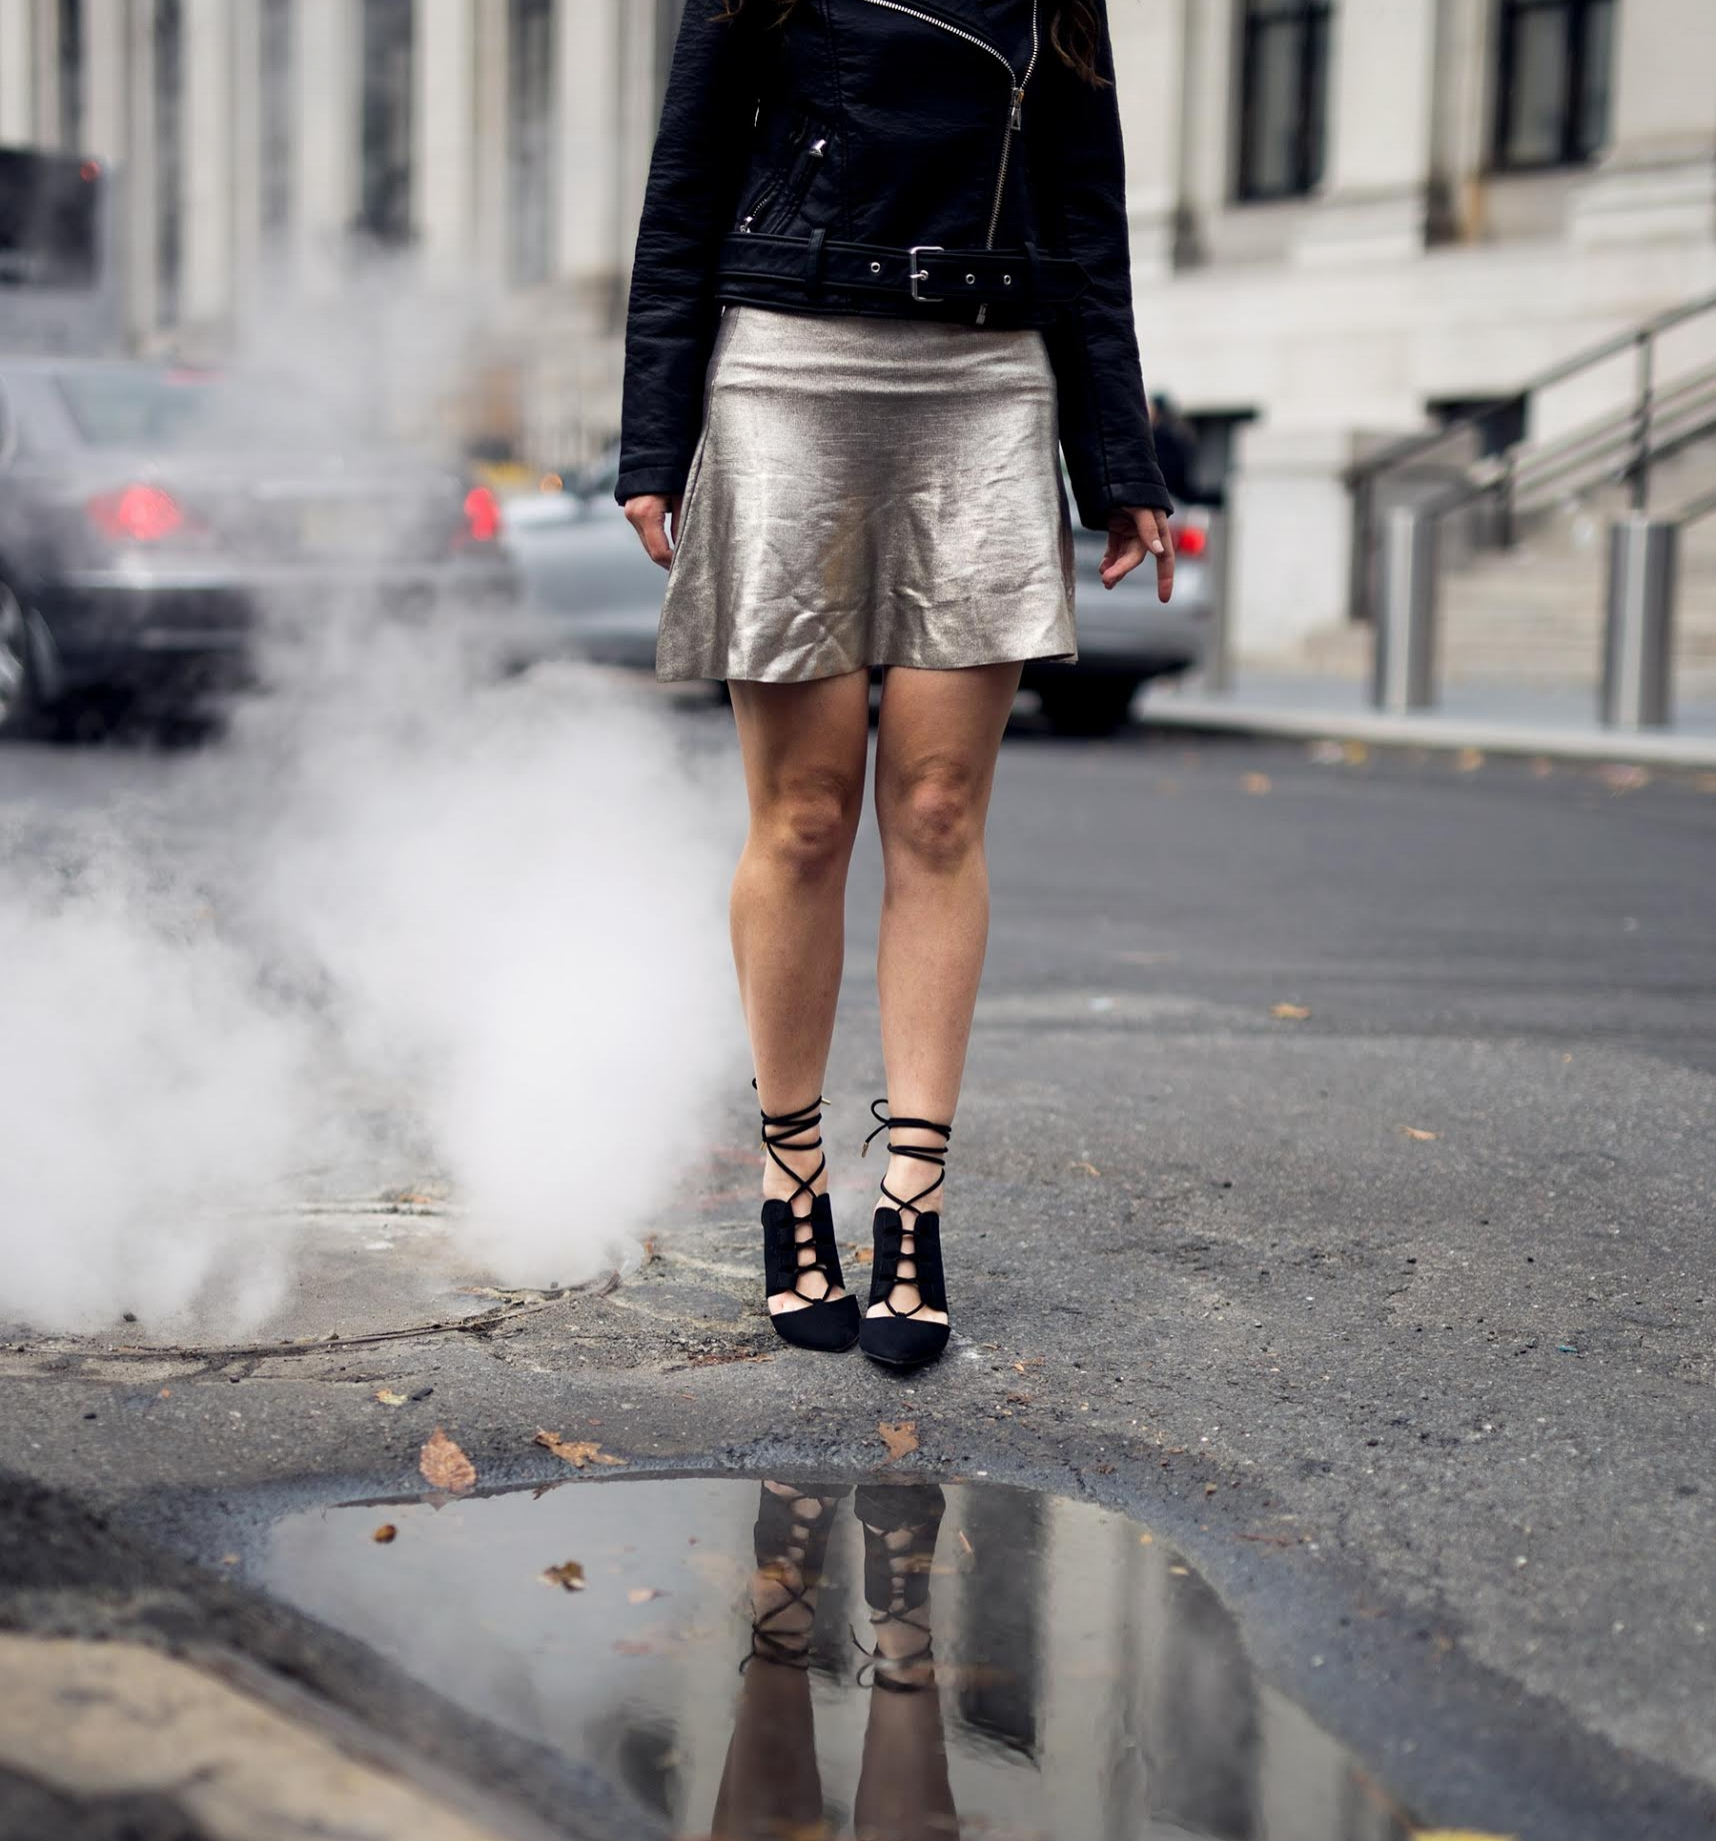 Feminine Edgy Look For The Holidays Payless Louboutins & Love Fashion Blog Esther Santer NYC Street Style Blogger Outfit OOTD Trendy Metallic Skirt Black Moto Leather Jacket Girly Lace-Up Heels Hair Shopping Women Pretty Shoes Party Photoshoot Model.jpg